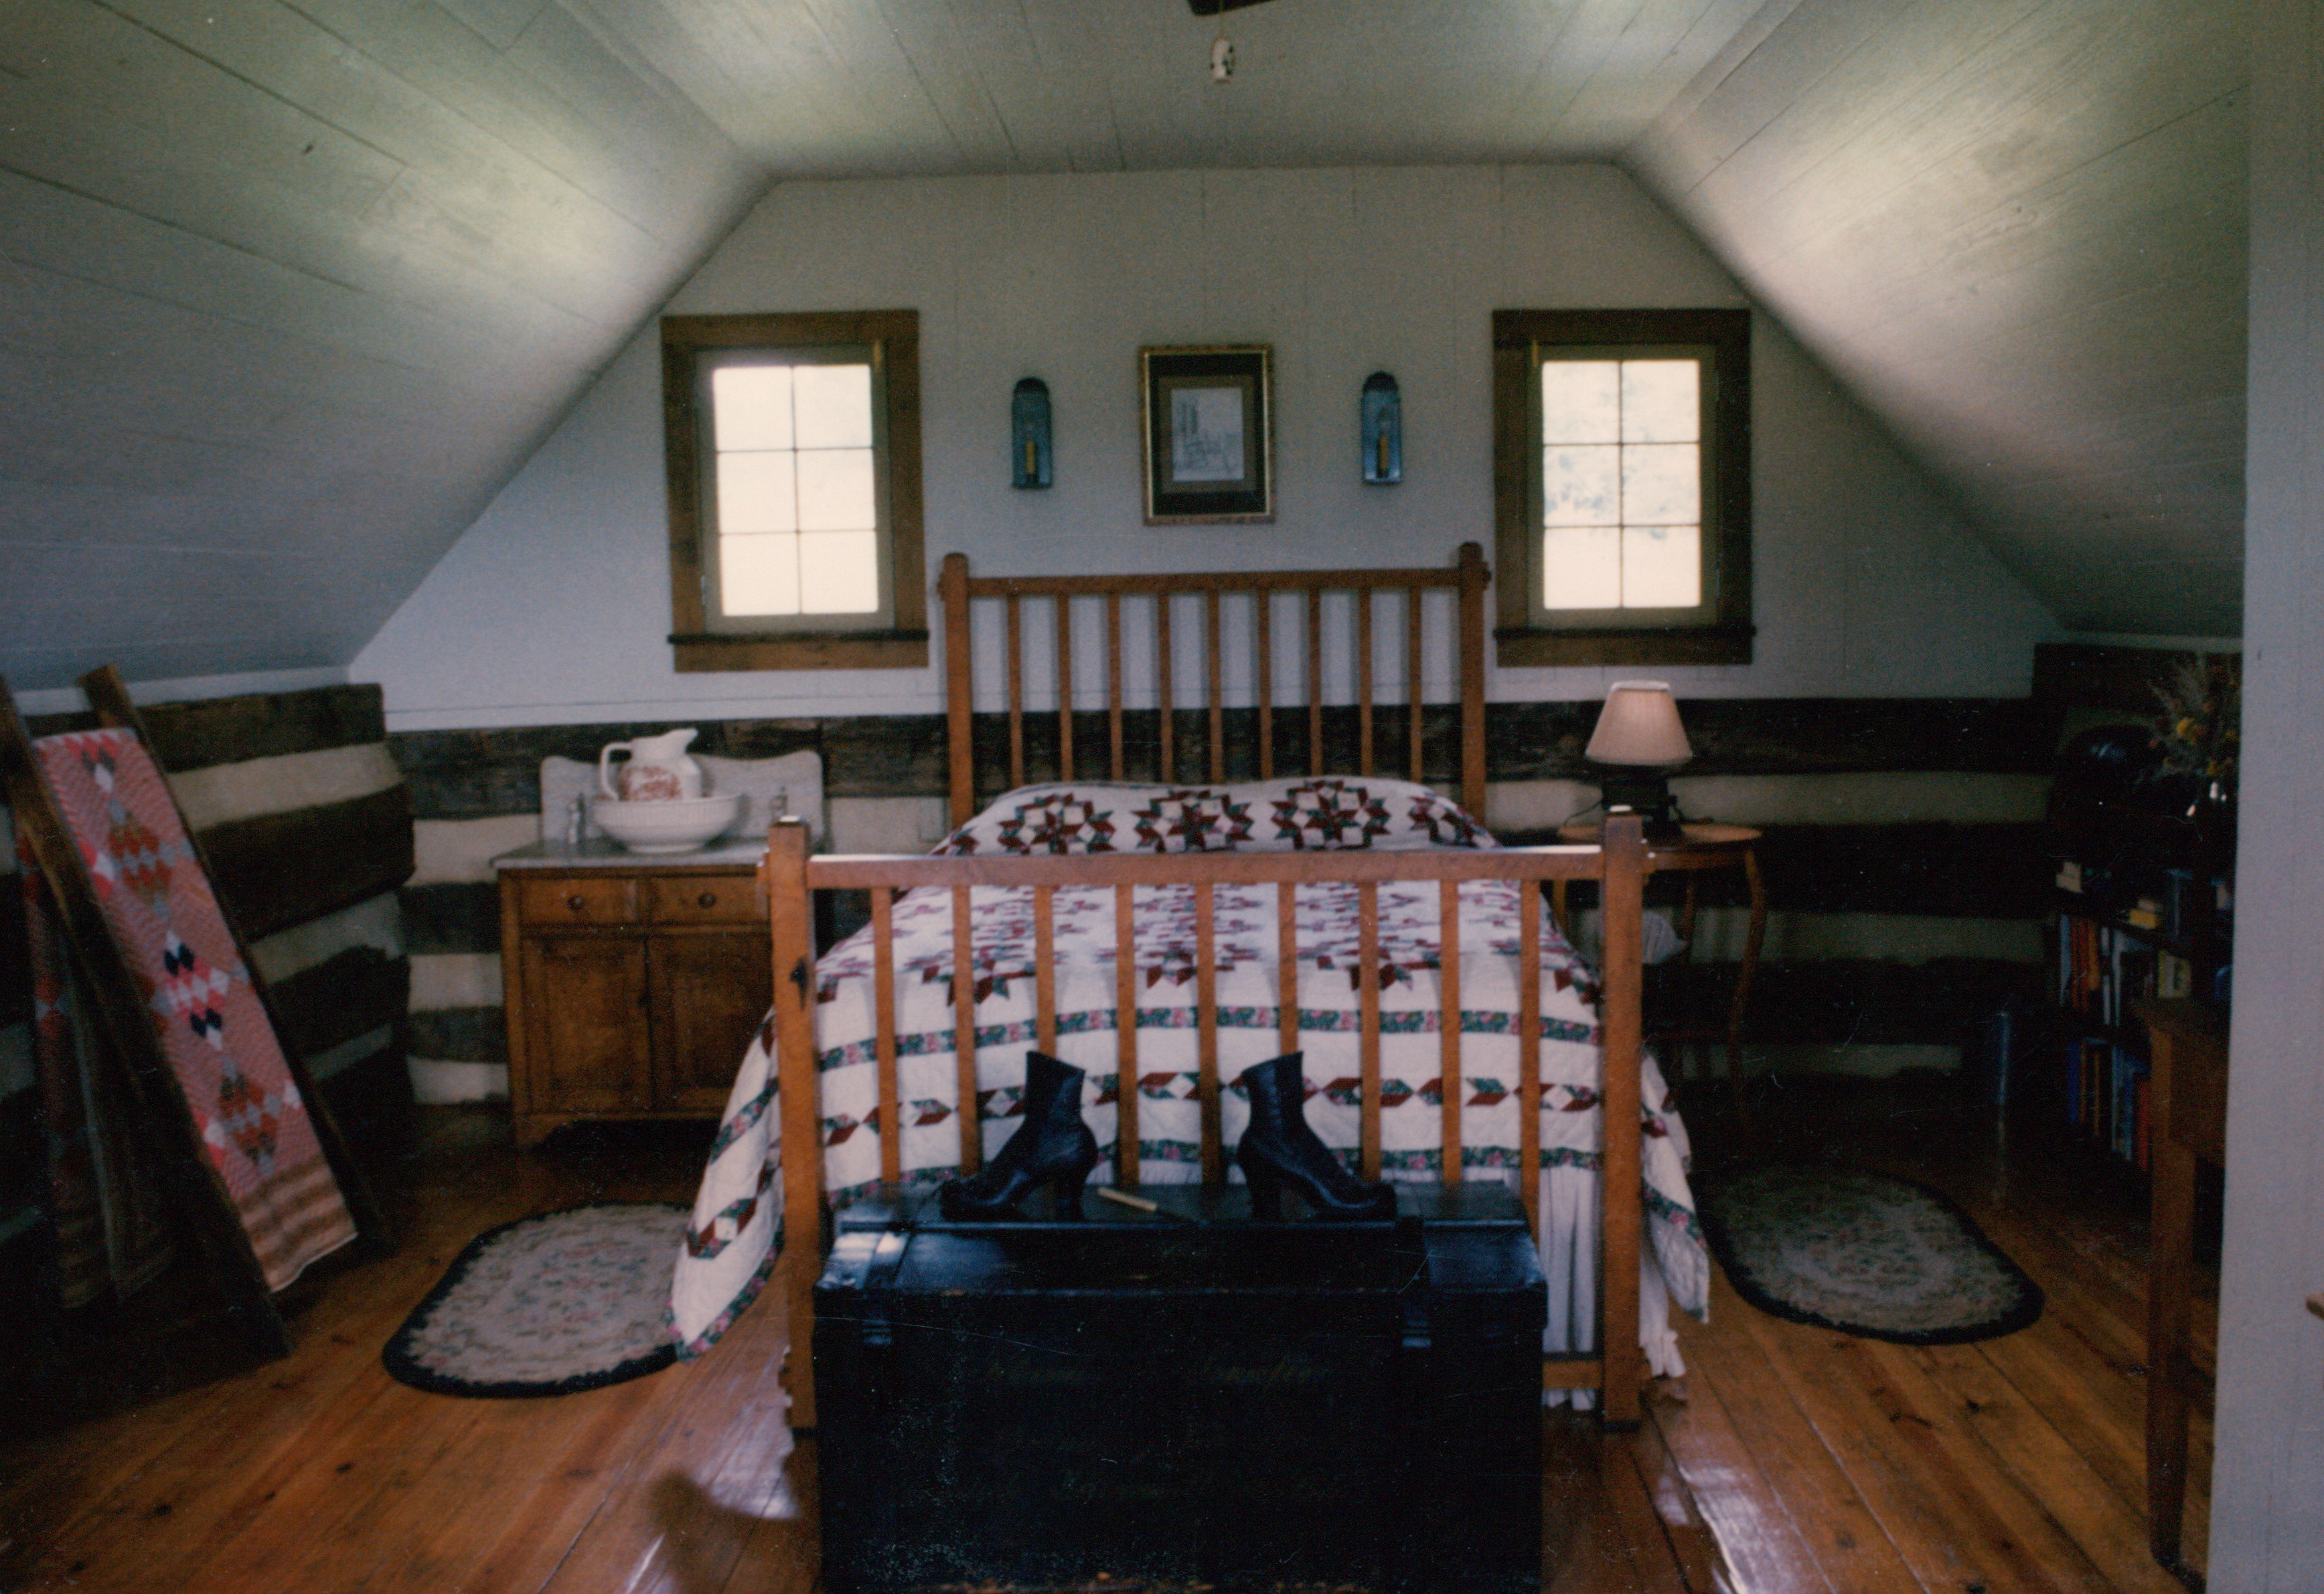 The proper way to build a log cabin loft bedroom for How to build a one room cabin